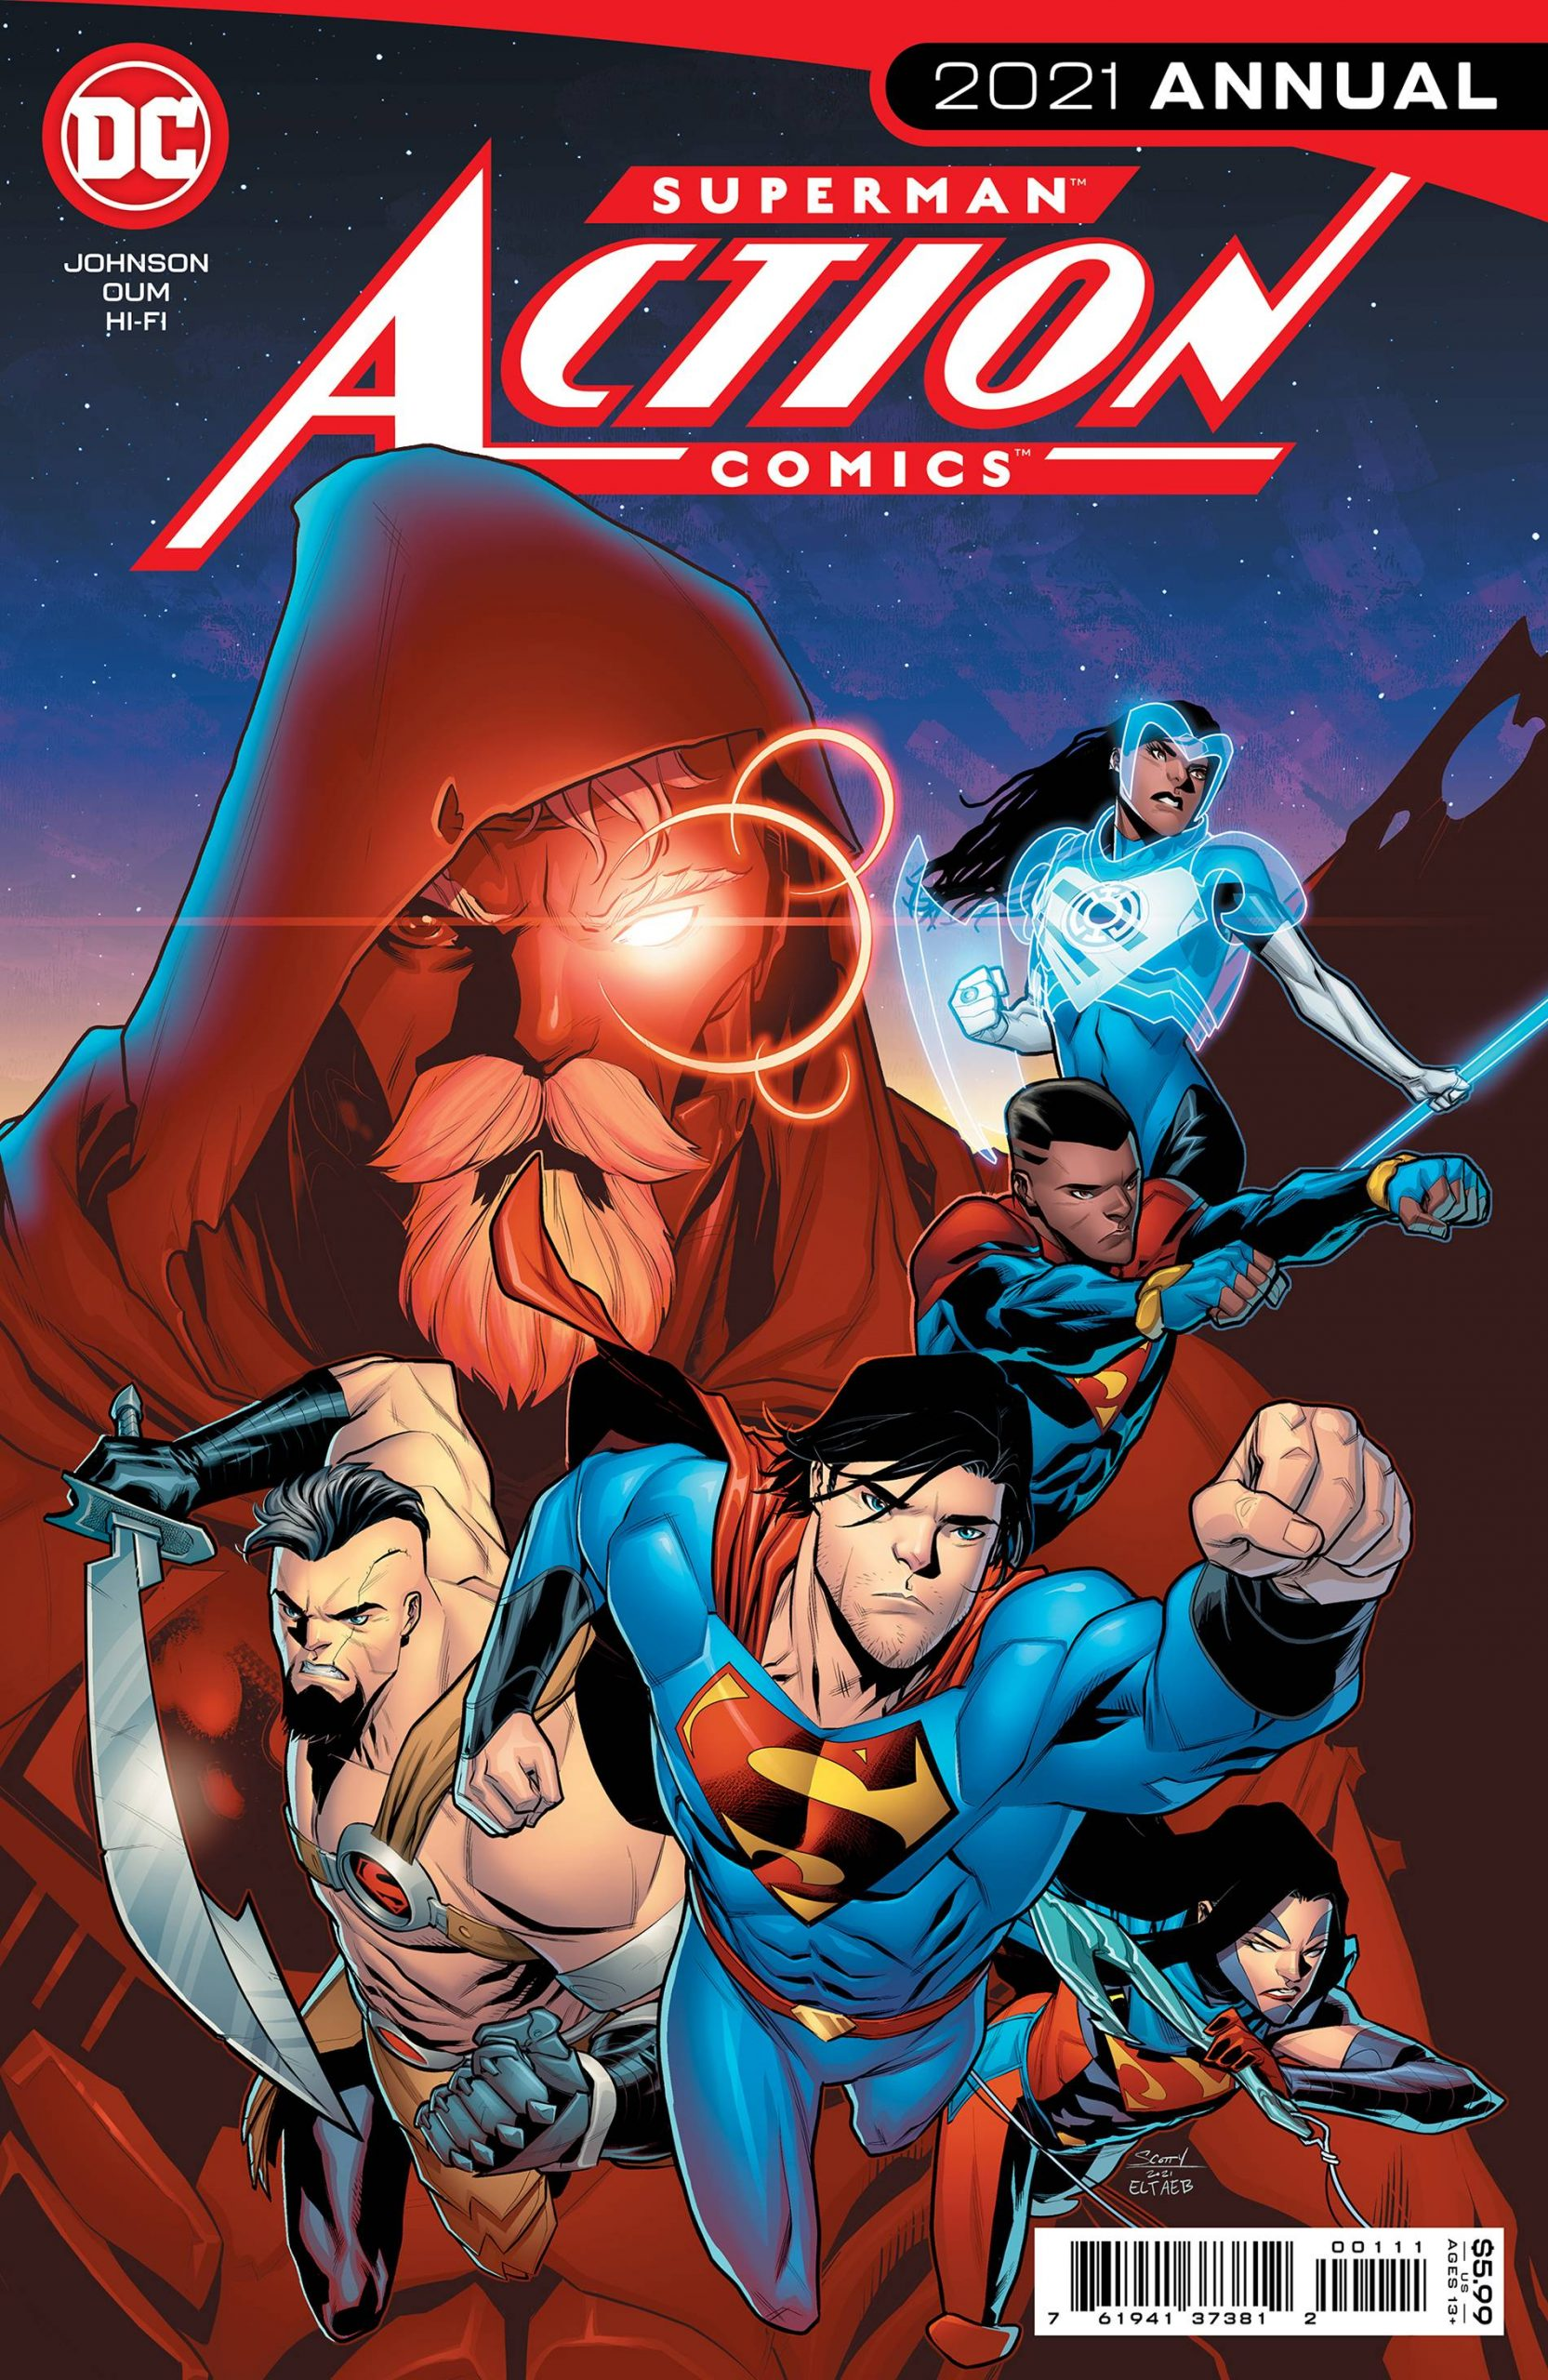 Action Comics 2021 Annual 1 spoilers 0 1 scaled 1 Recent Comic Cover Updates For The Week Ending 2021 07 23